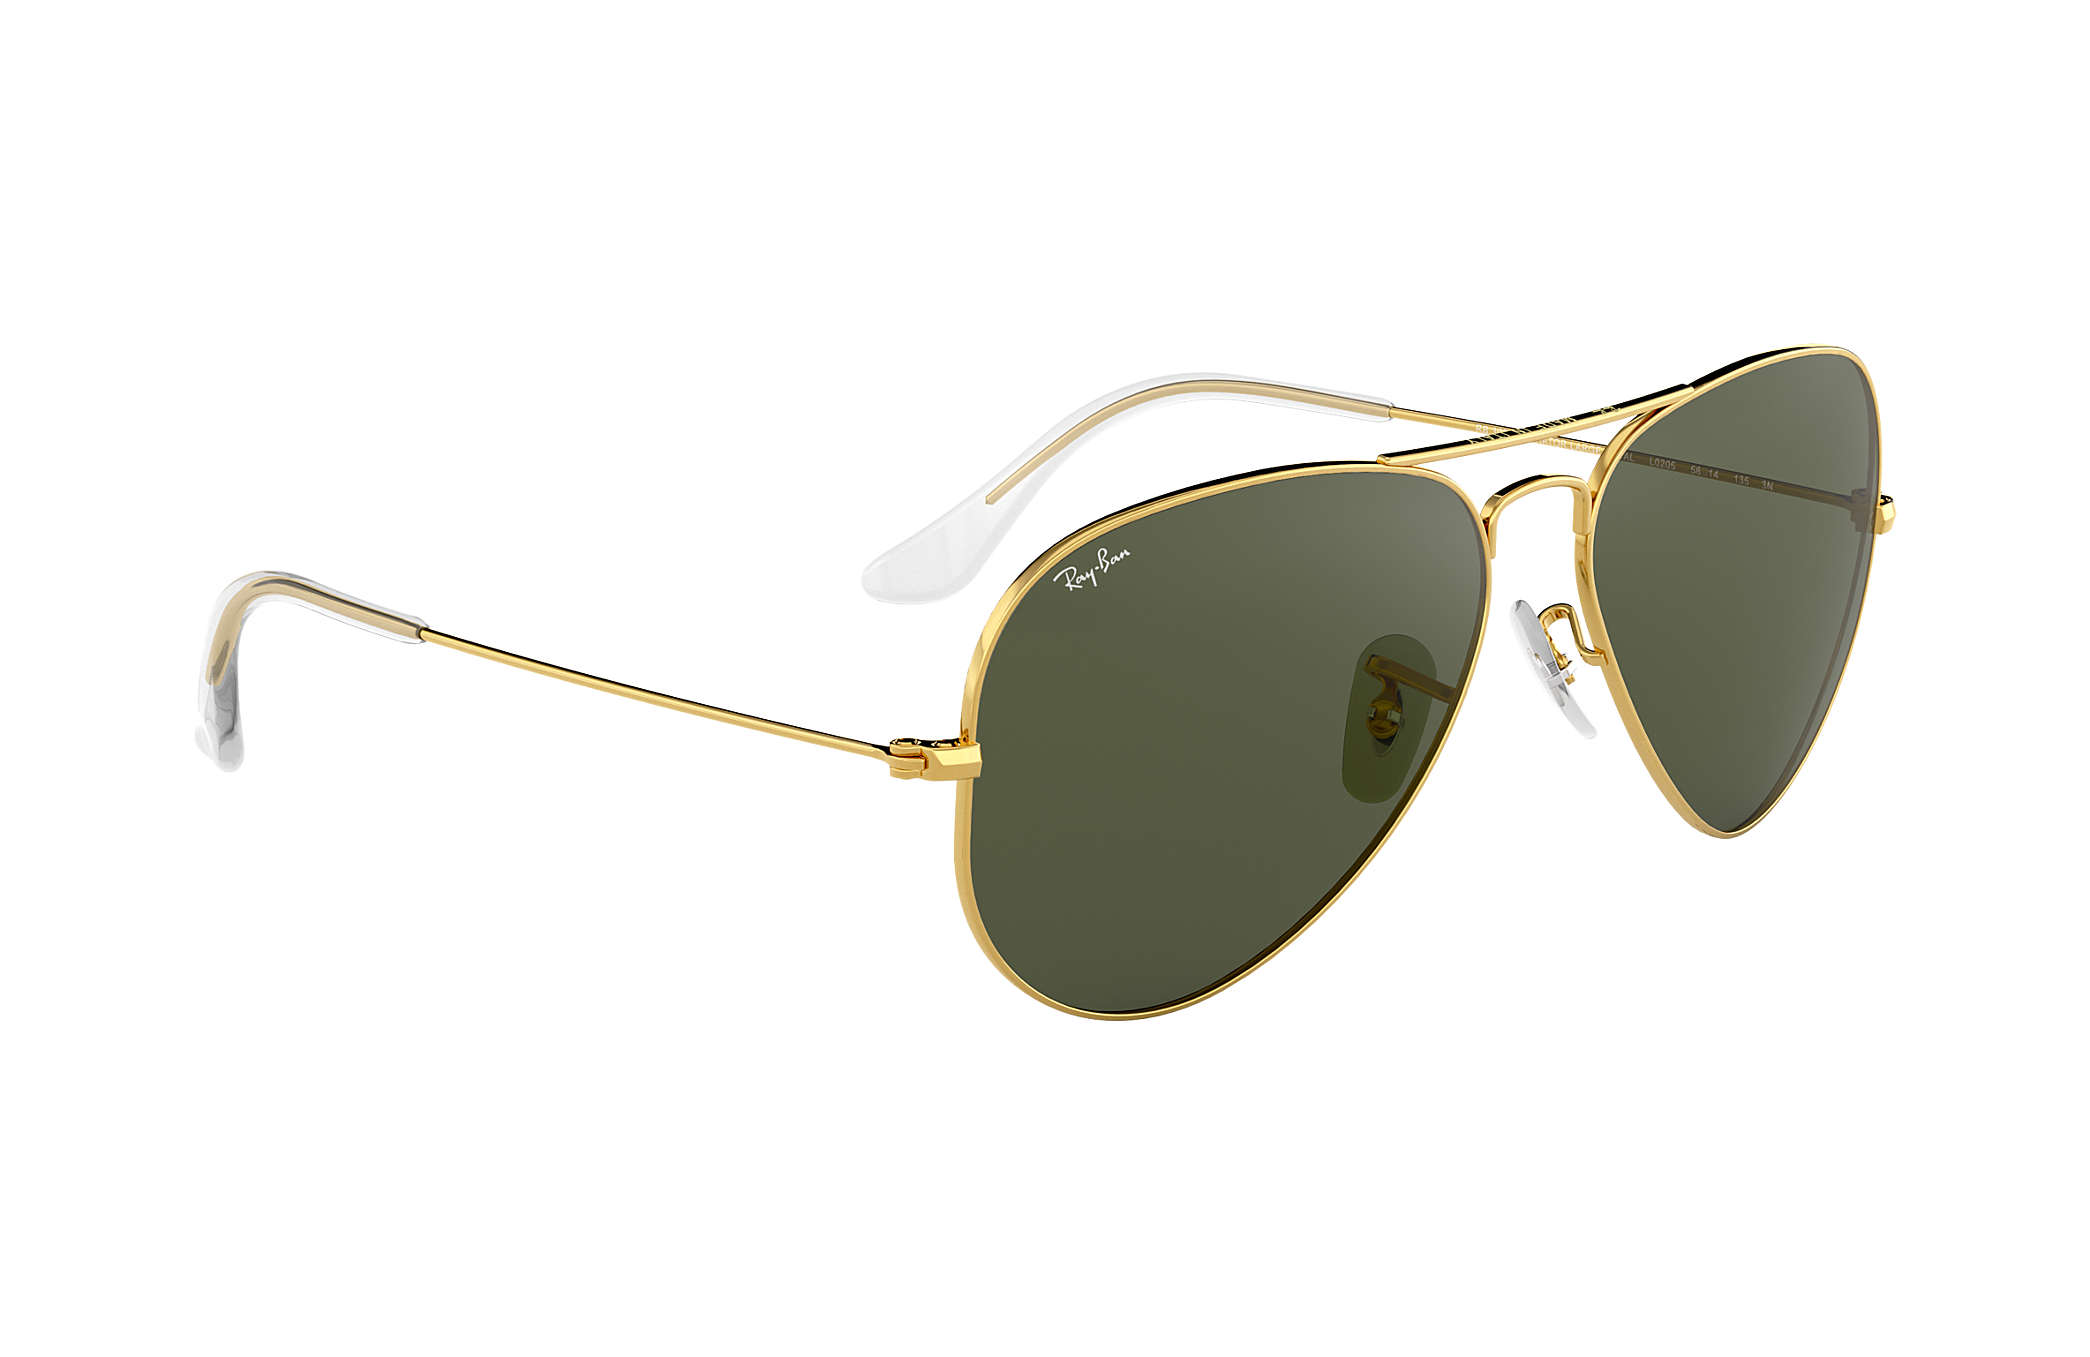 d7ed6a7ea0 Ray-Ban Aviator Classic RB3025 Gold - Metal - Green Lenses ...